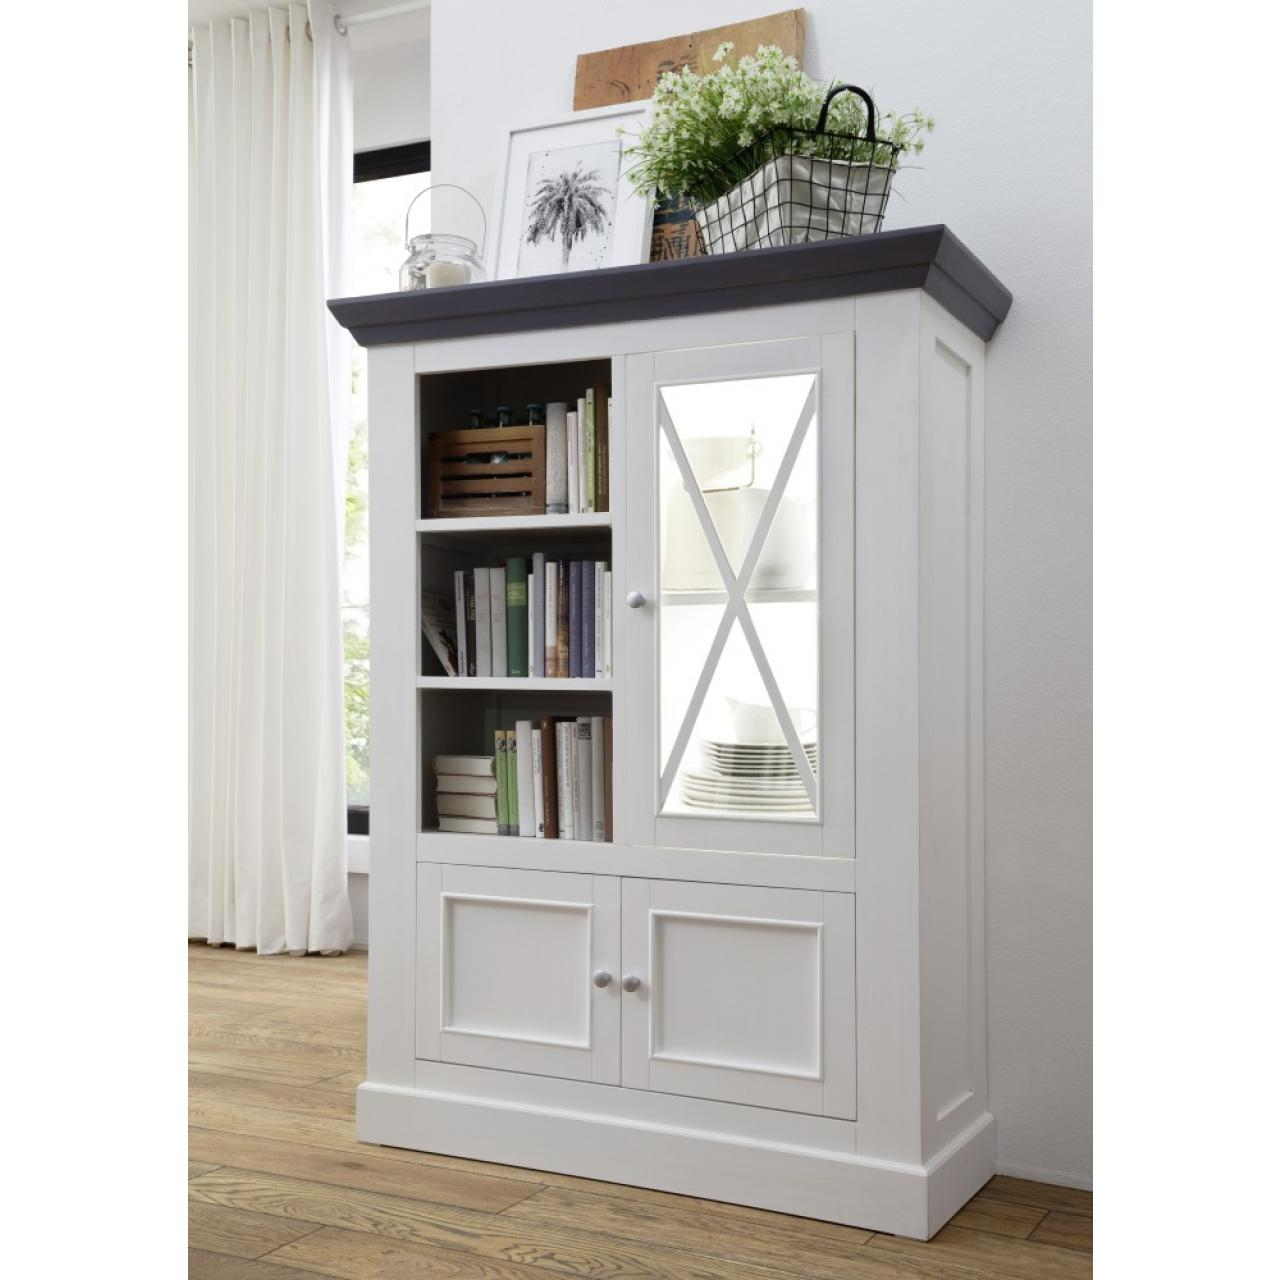 vitrine grau excellent jugendstil schrank vitrine kommode grau weiss shabby chic antik with. Black Bedroom Furniture Sets. Home Design Ideas